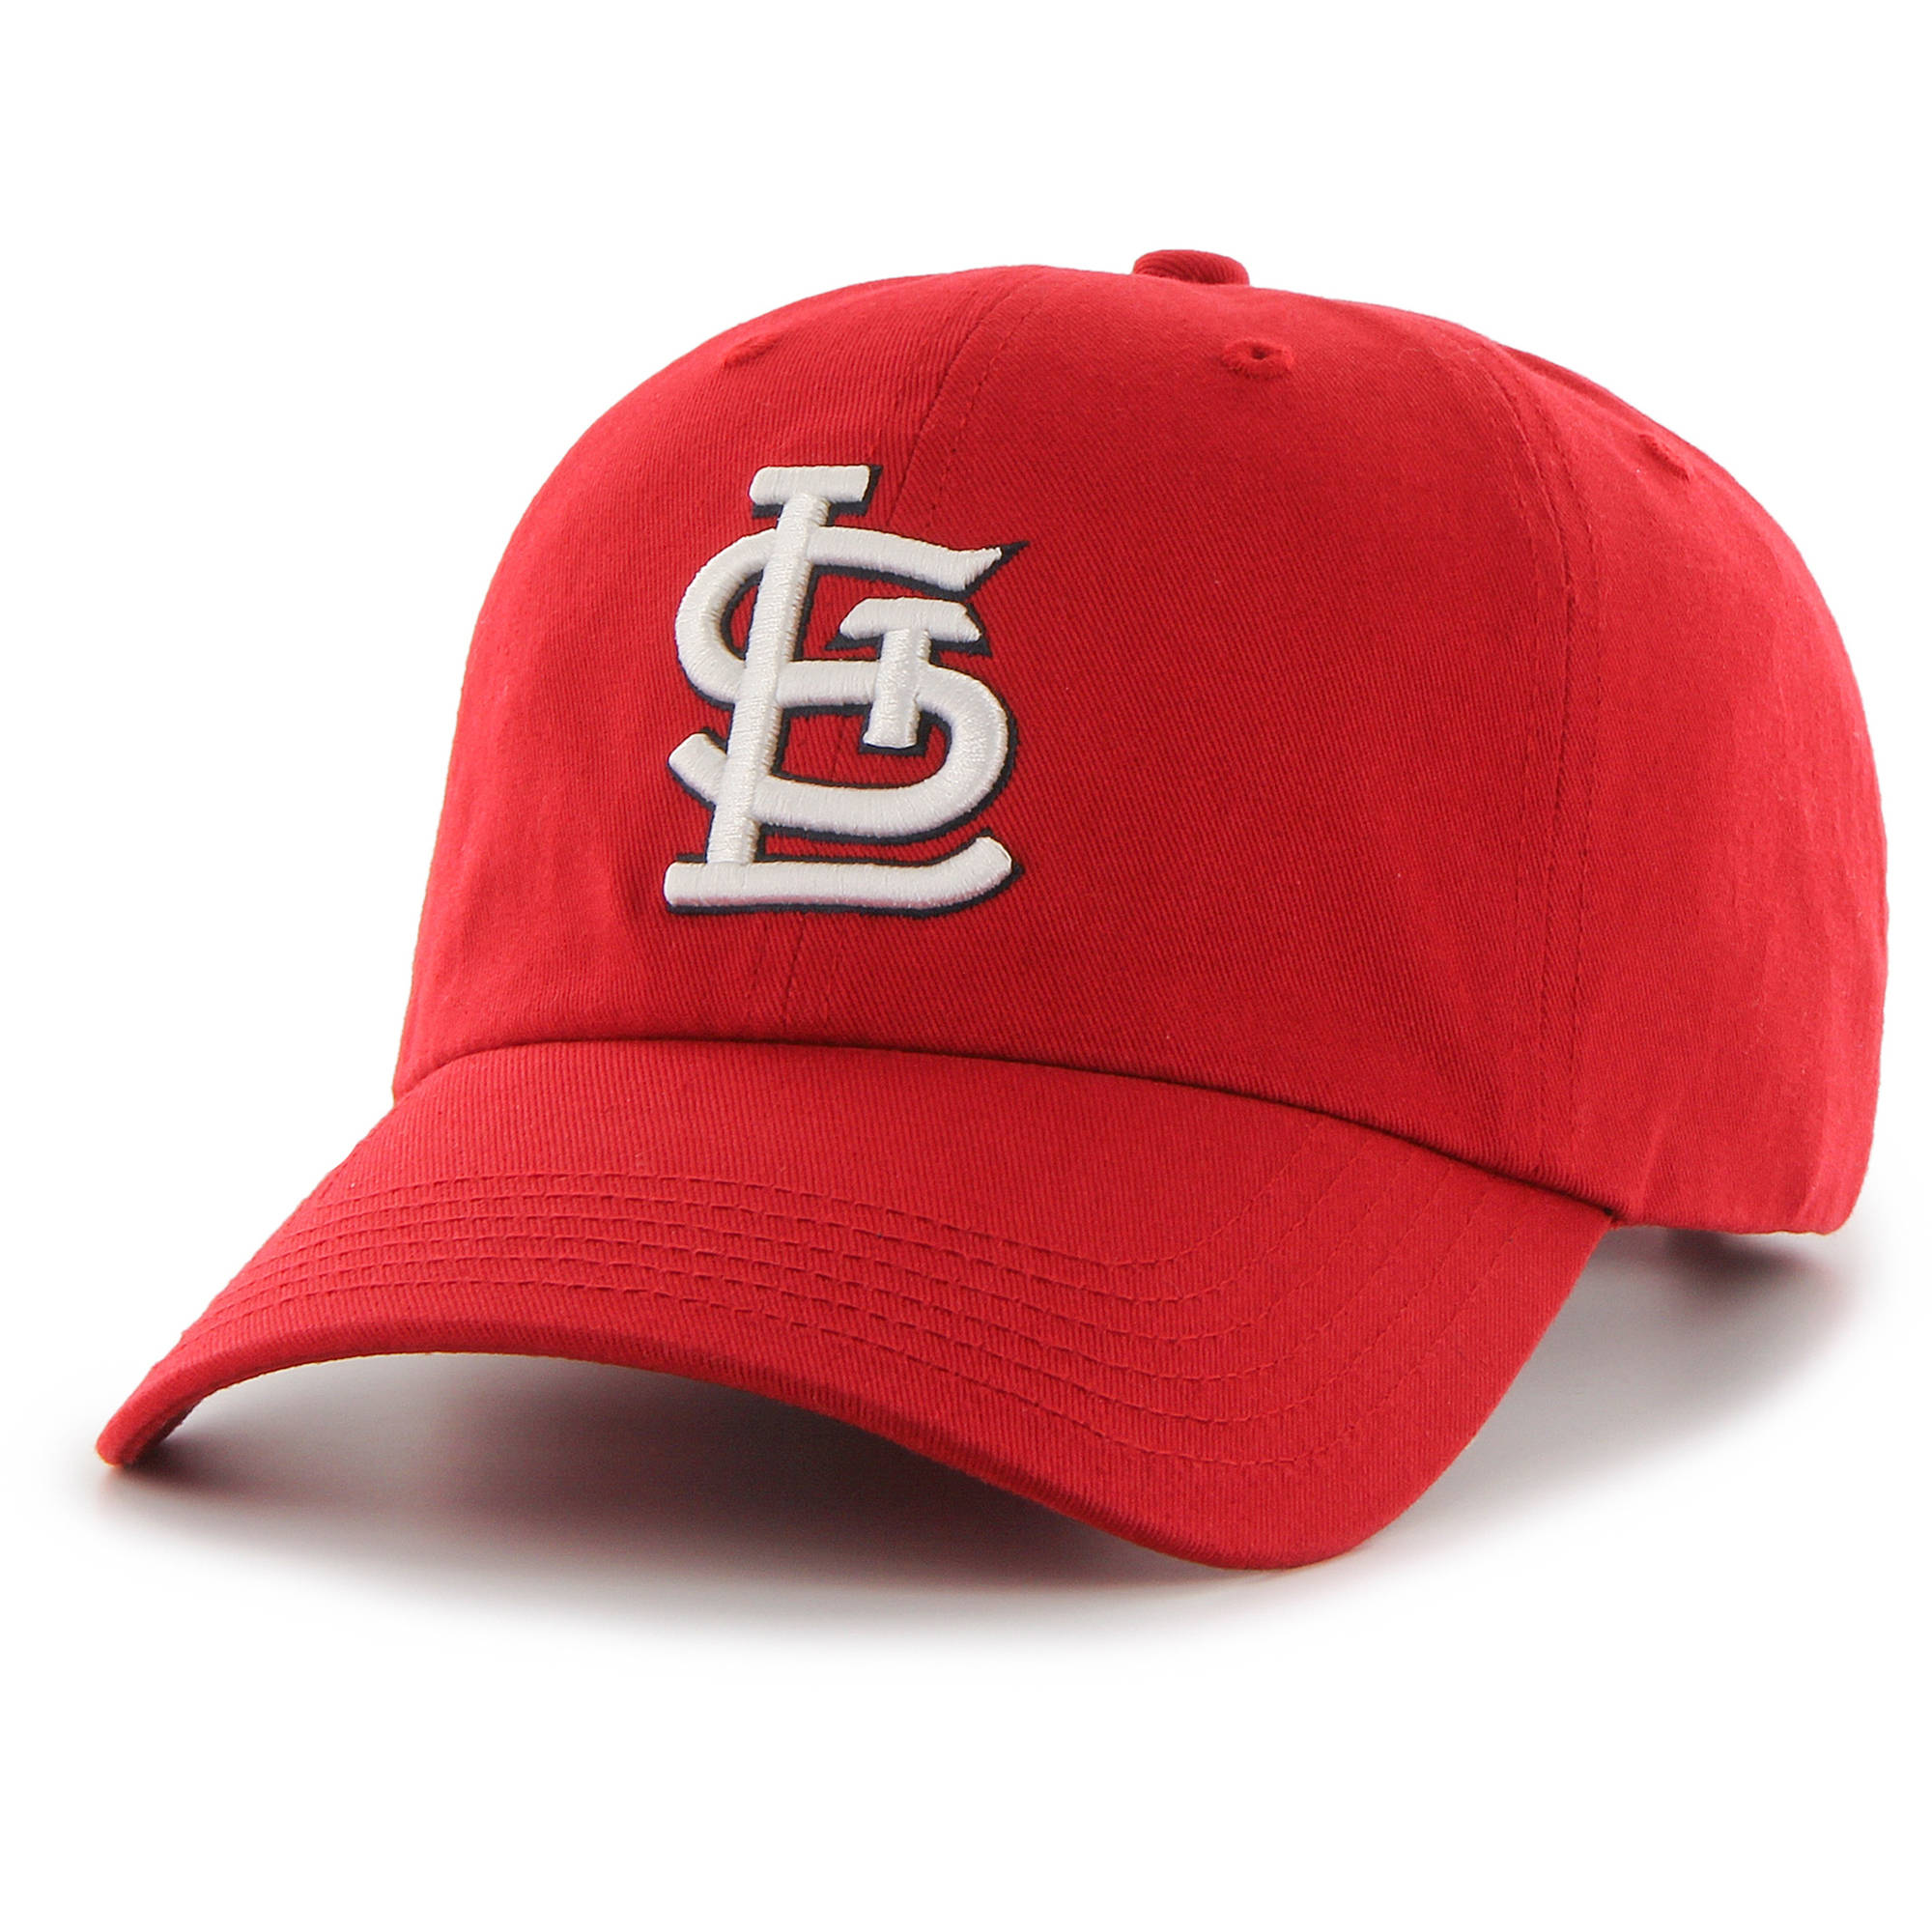 MLB St. Louis Cardinals Clean Up Cap / Hat by Fan Favorite